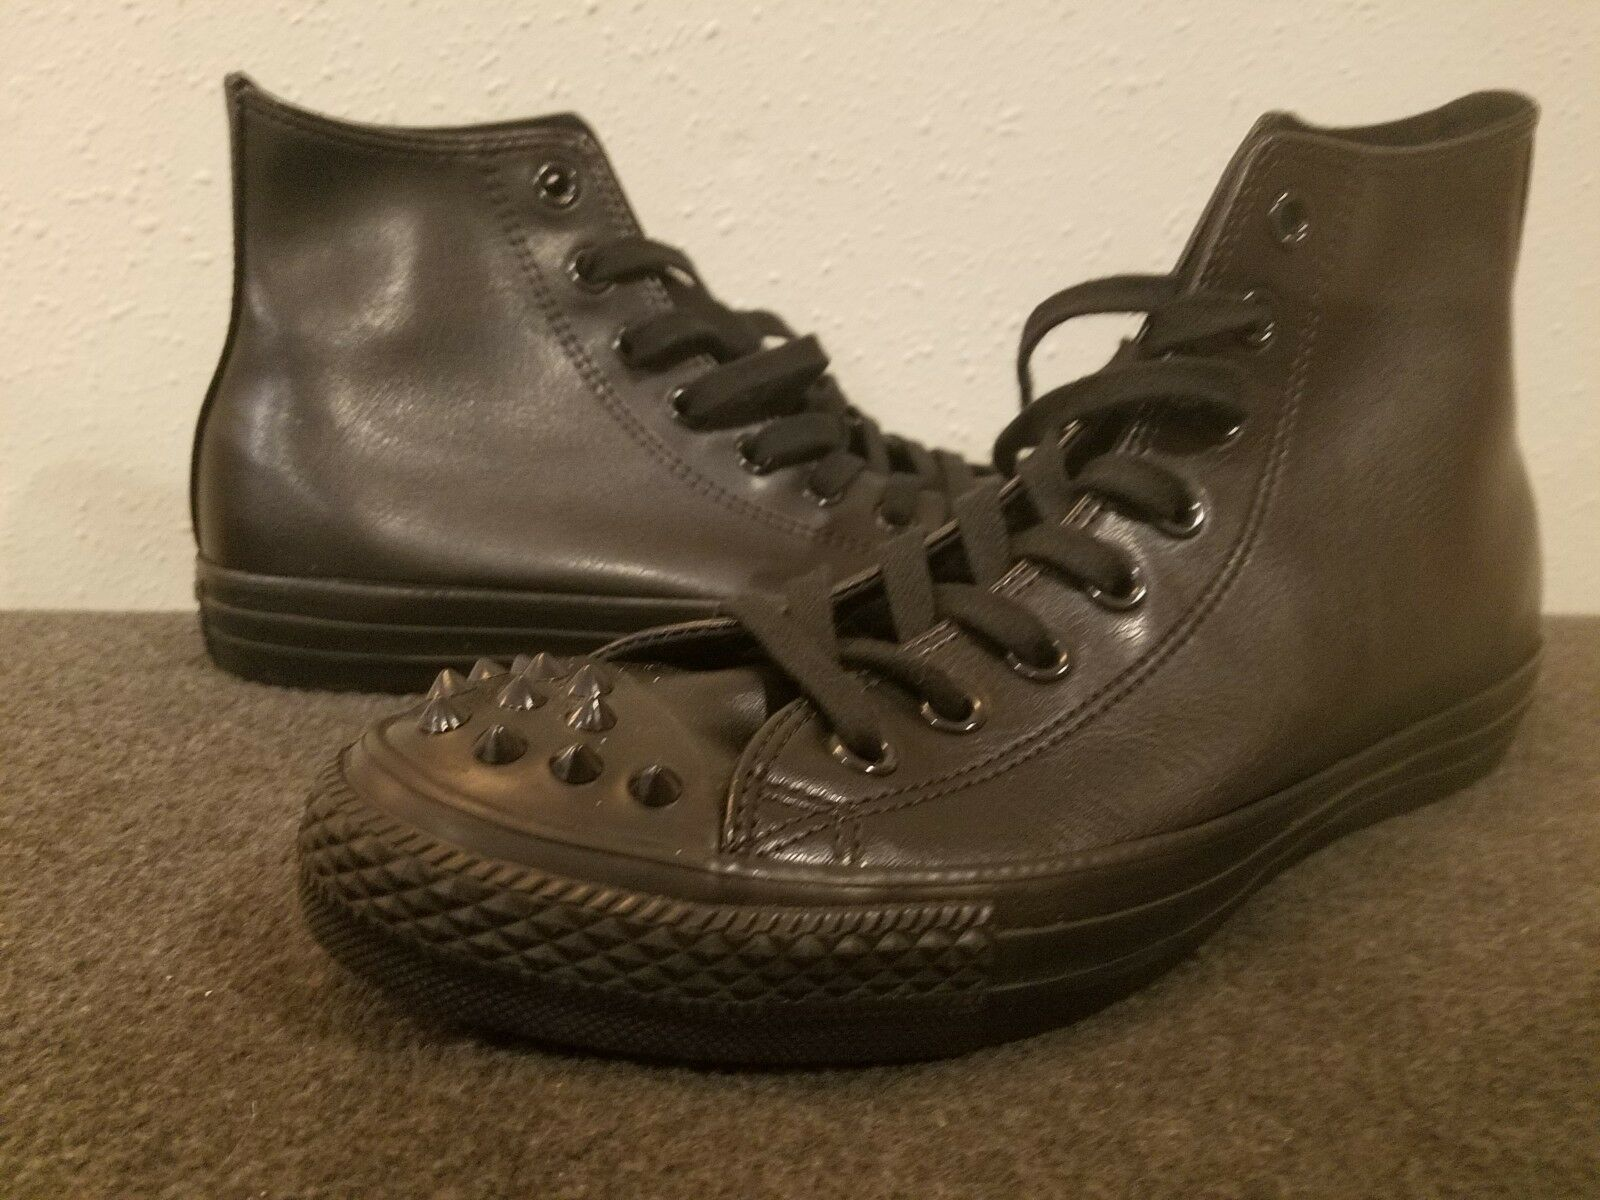 Studded Converse All Star Chuck Taylor High top black shoes black studs SZ 9 HTF